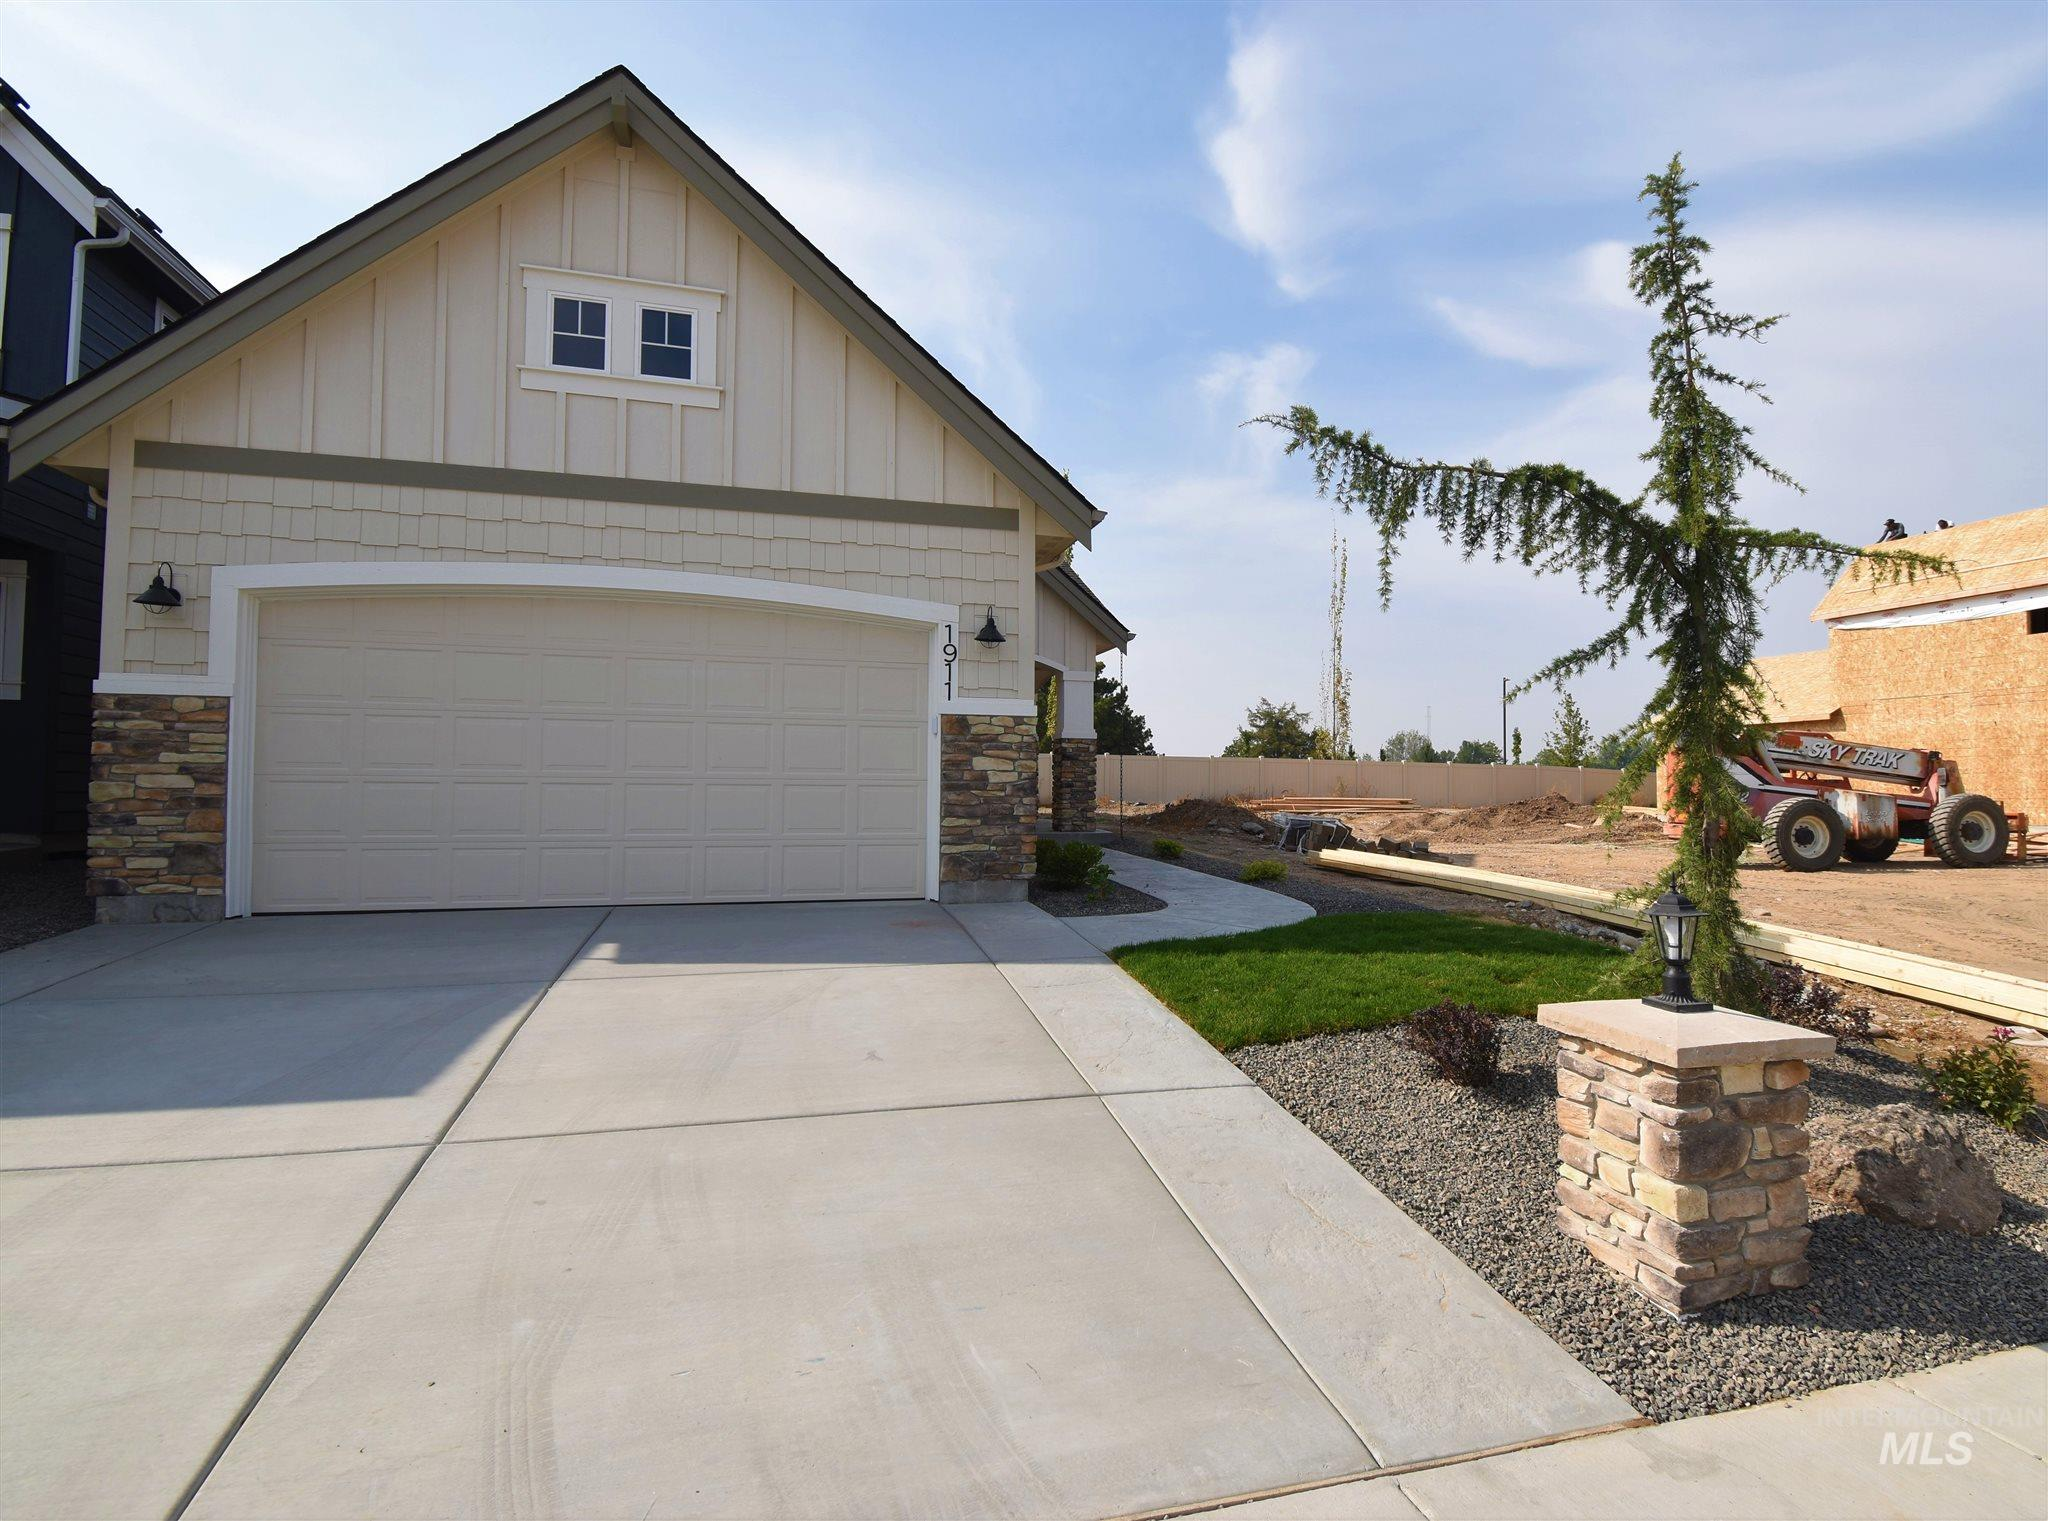 1911 E Presidential Drive, Meridian, Idaho 83642, 3 Bedrooms, 2.5 Bathrooms, Rental For Rent, Price $2,150, 98782127